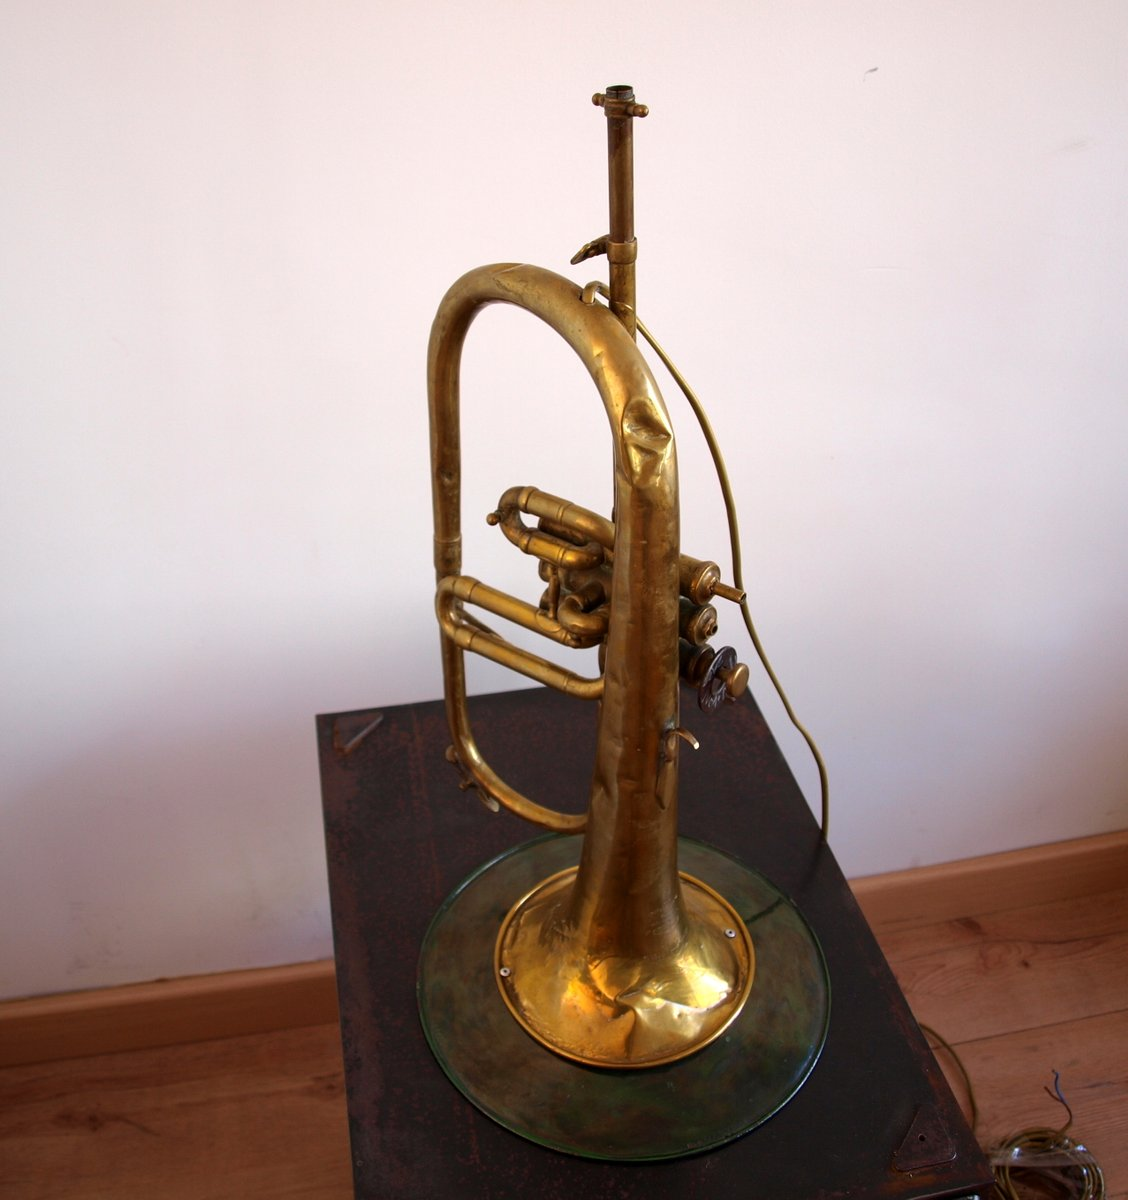 Ceiling Lamp Price: Vintage Trumpet Ceiling Lamp For Sale At Pamono